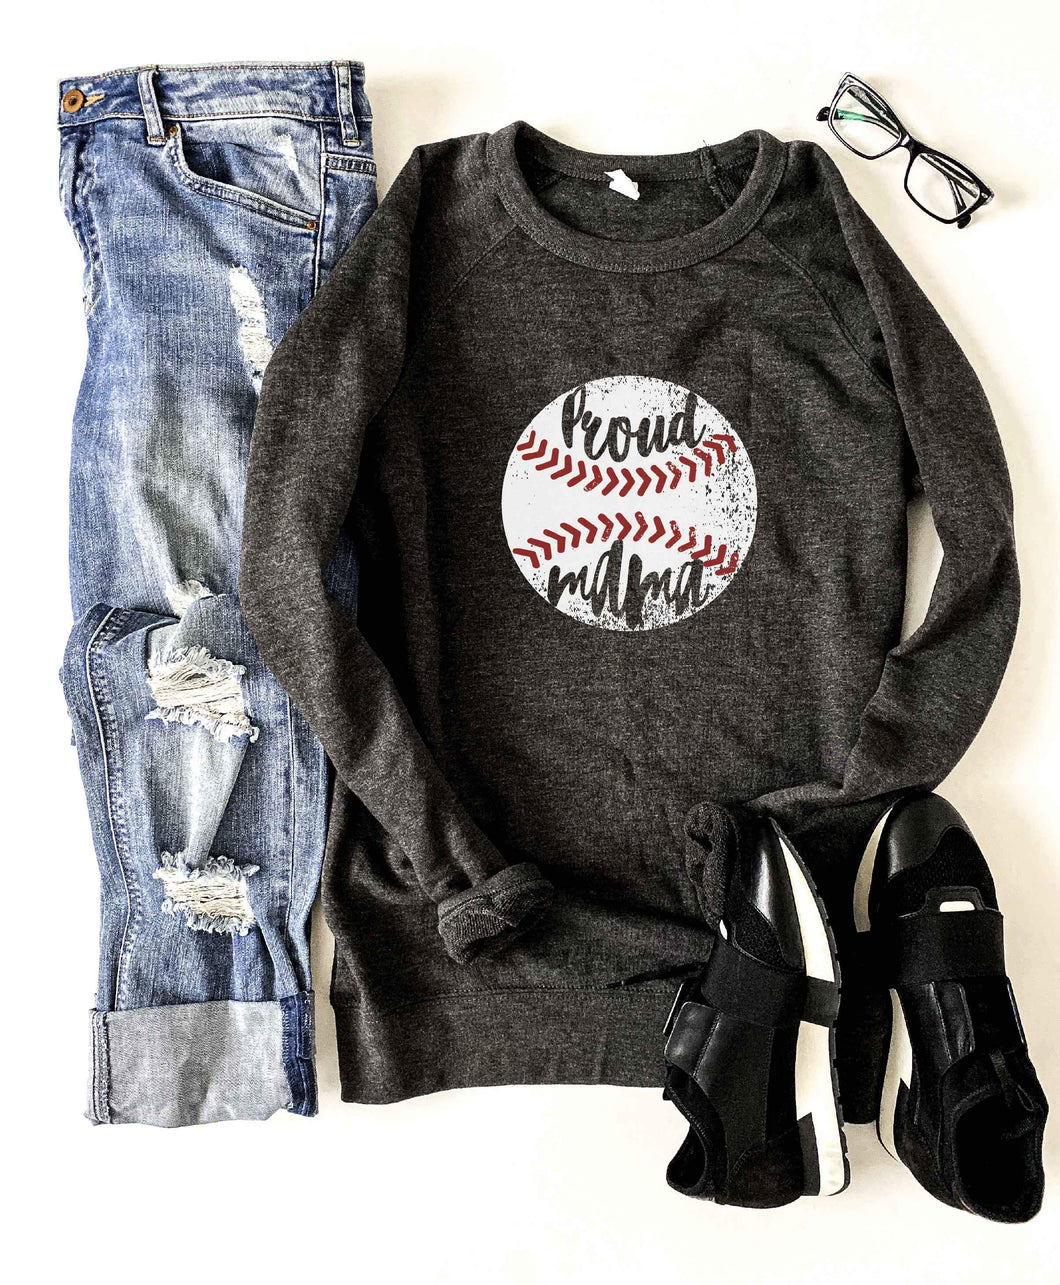 Proud mama baseball French Terry raglan sweatshirt Baseball french Terry raglan Lane seven French Terry raglan